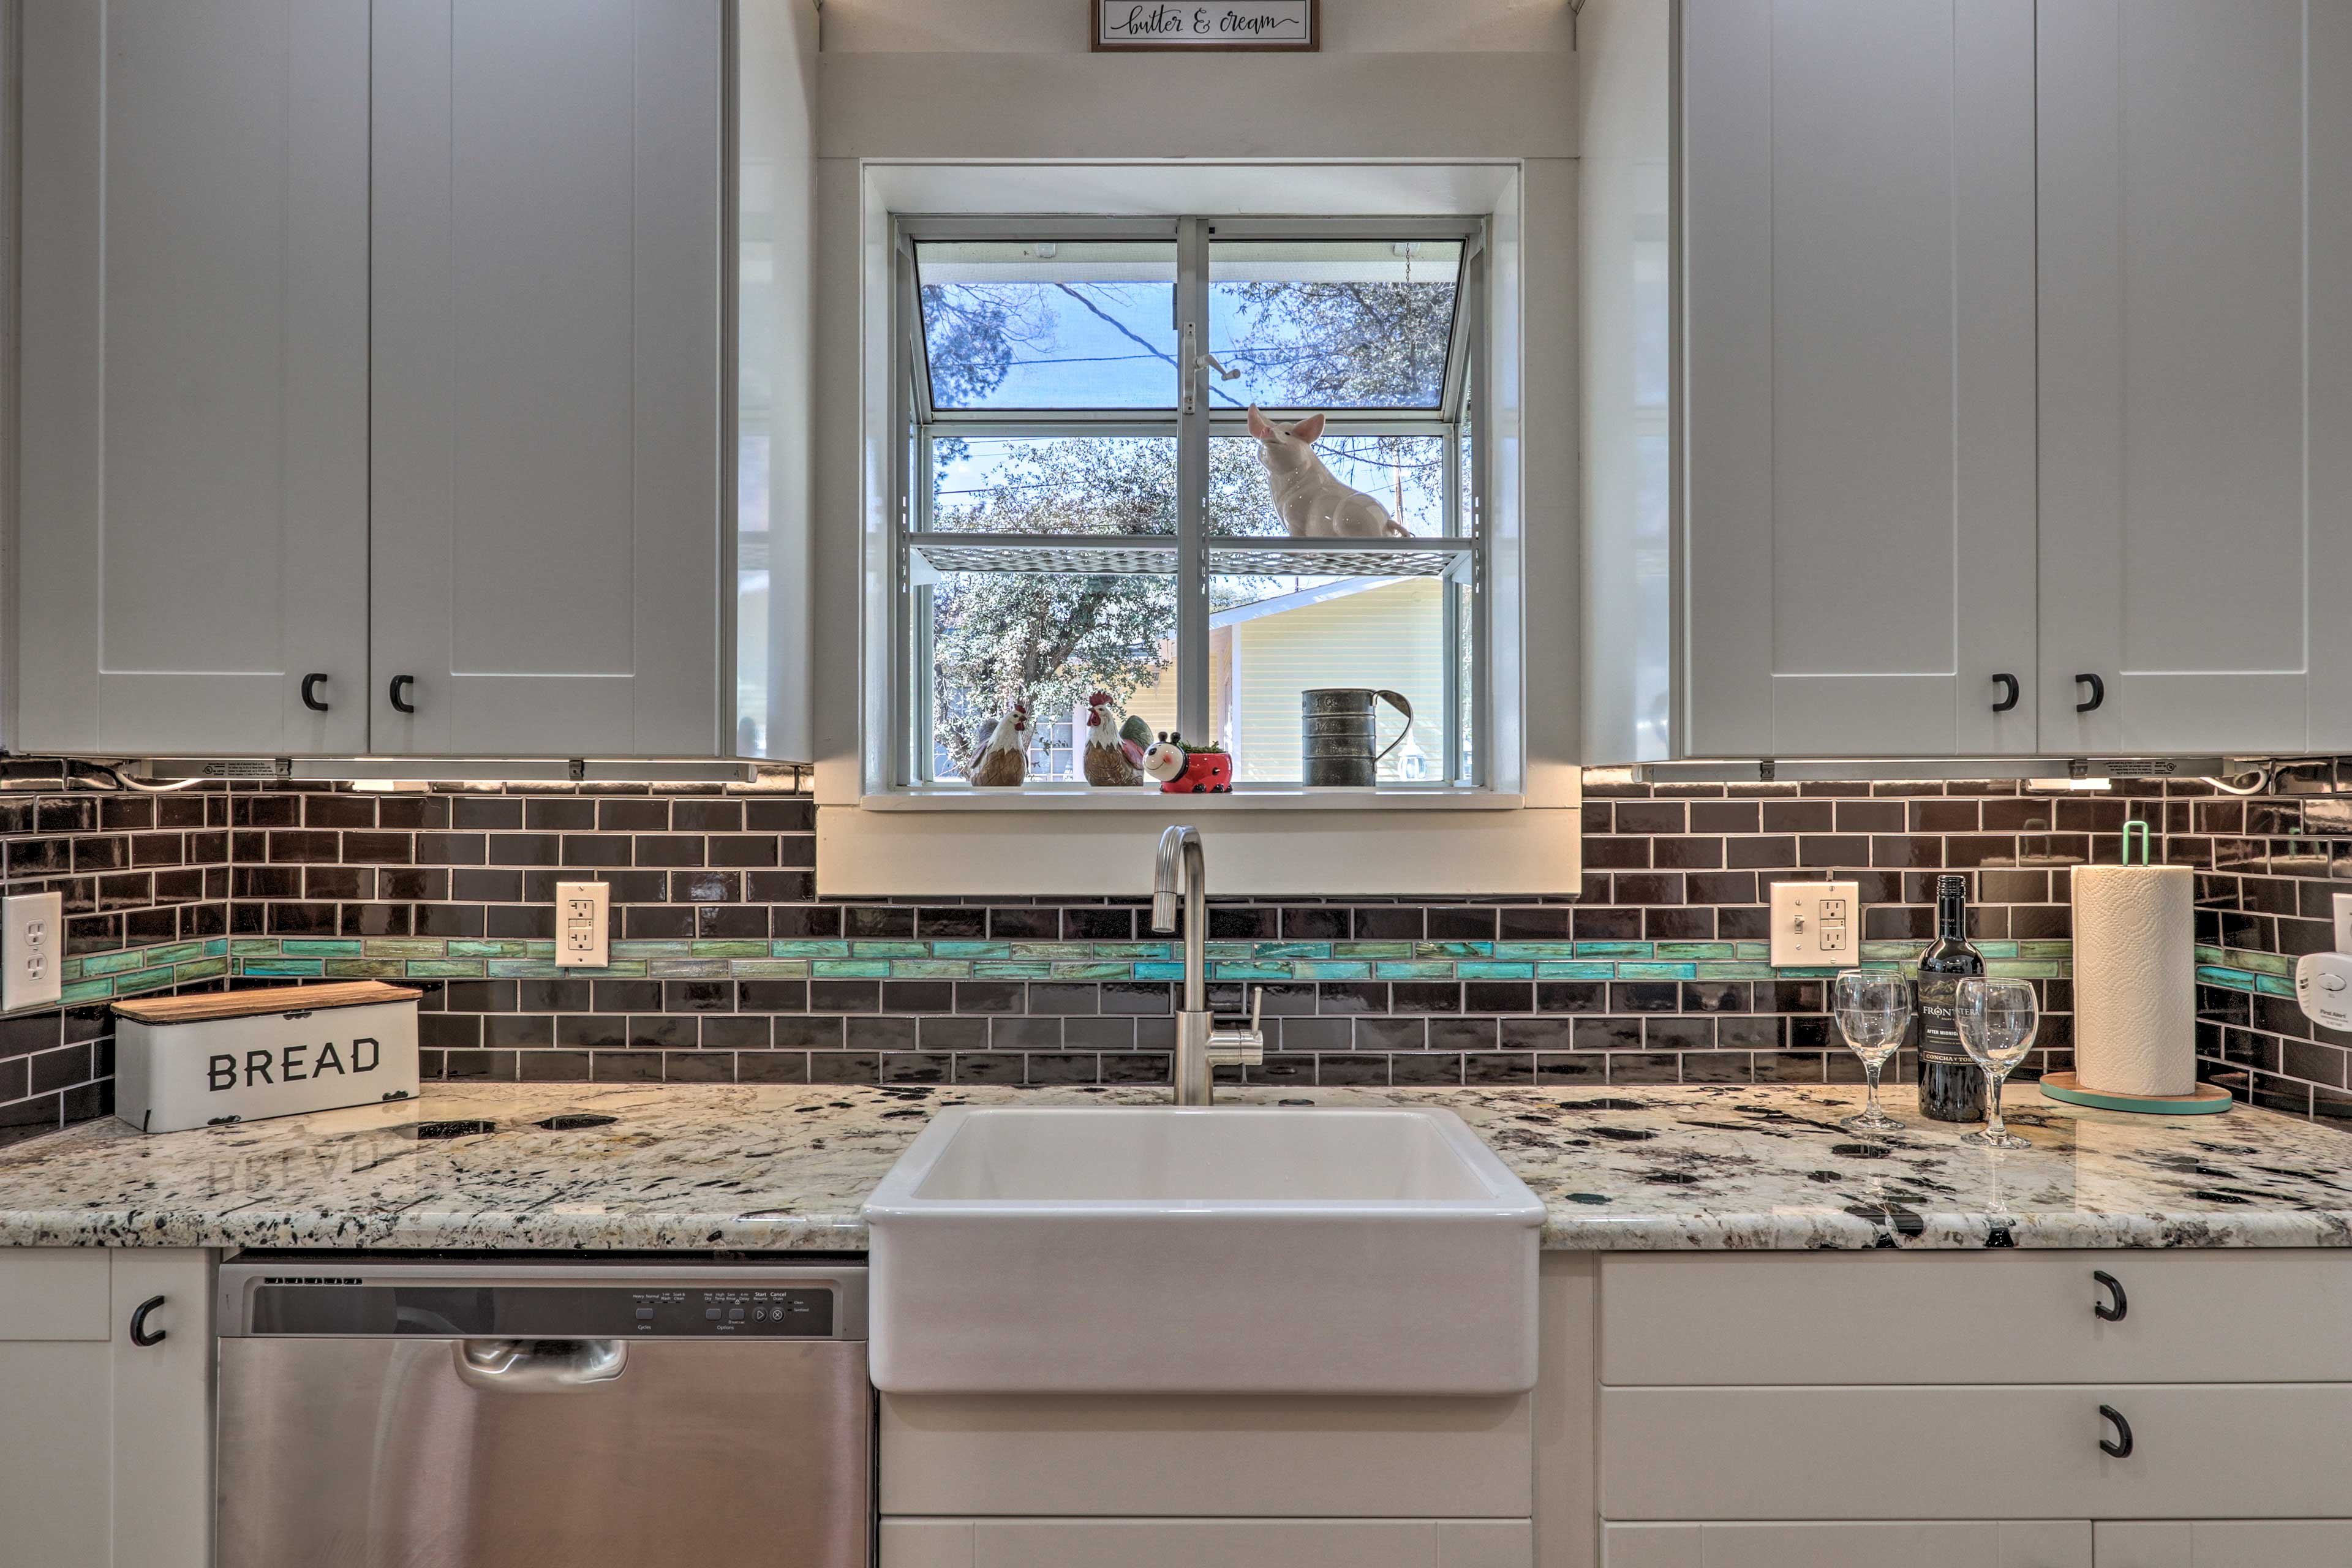 This farmhouse-style sink is a beautiful touch.